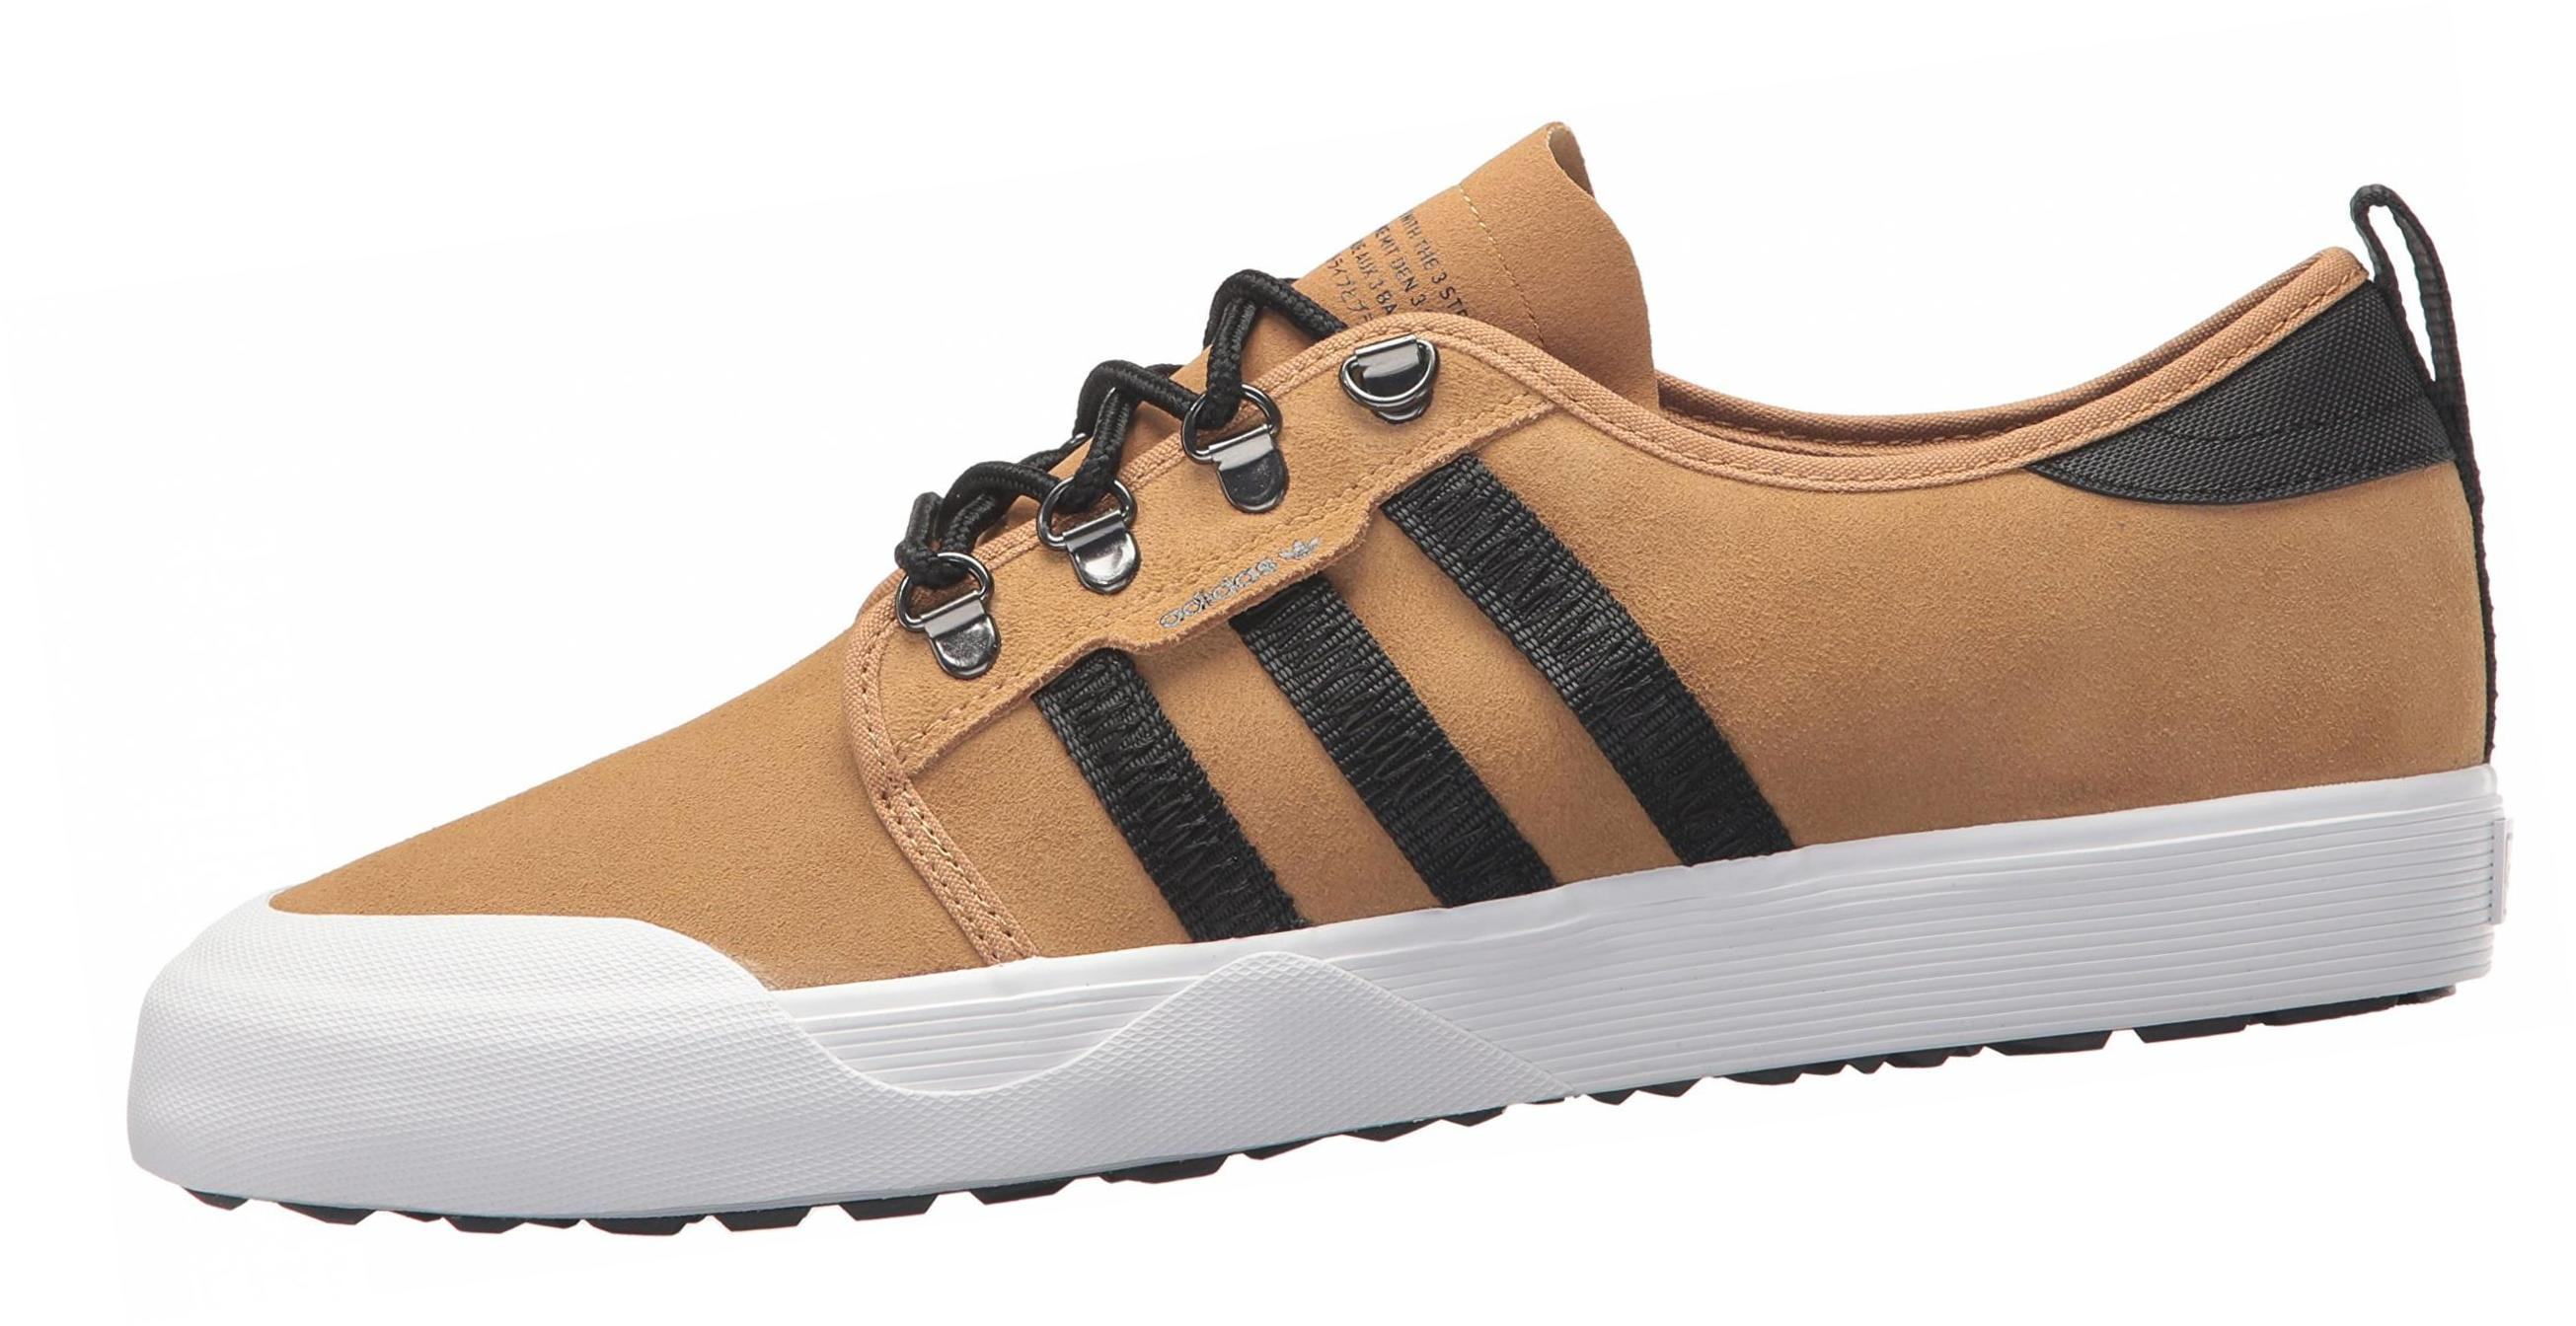 Adidas Seeley Outdoor